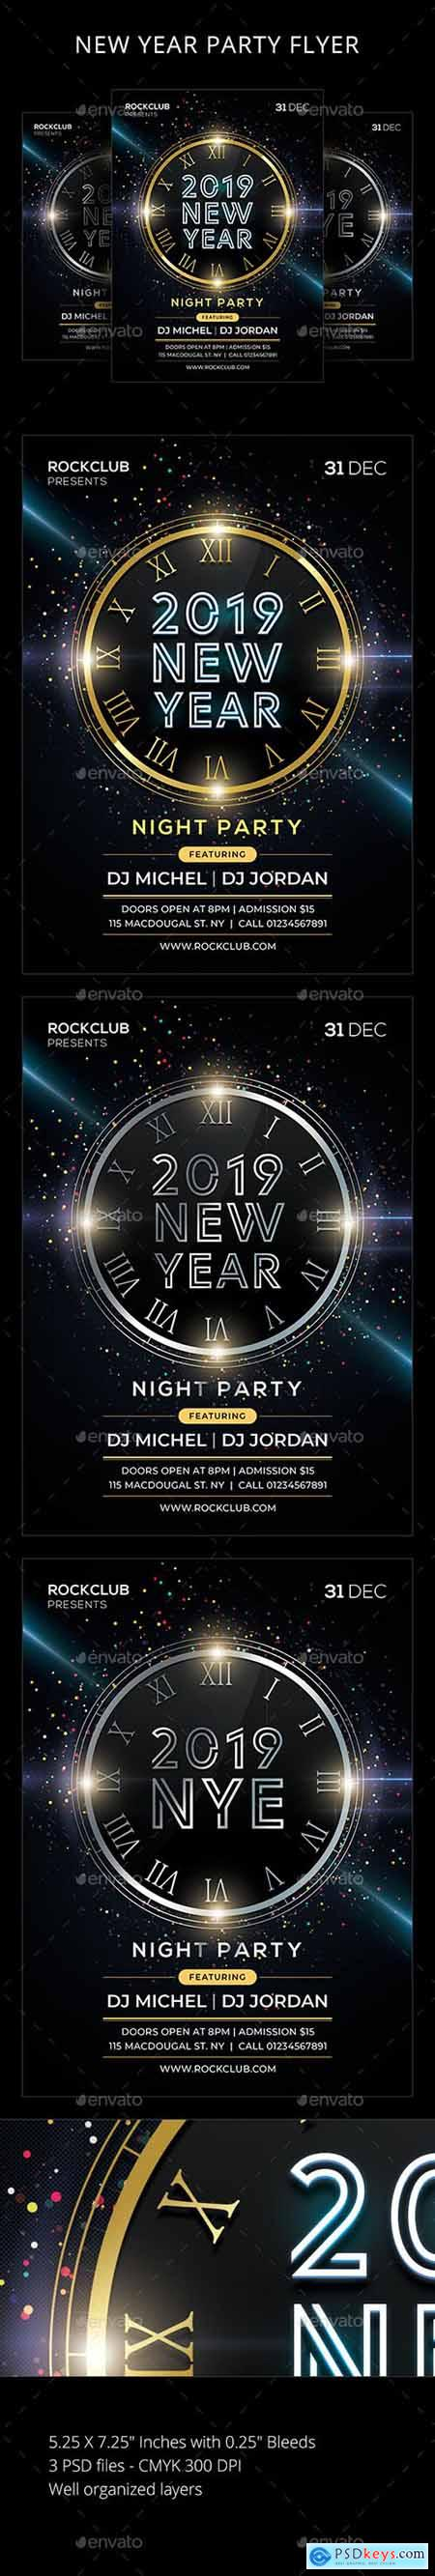 New Year Party Flyer 22855602